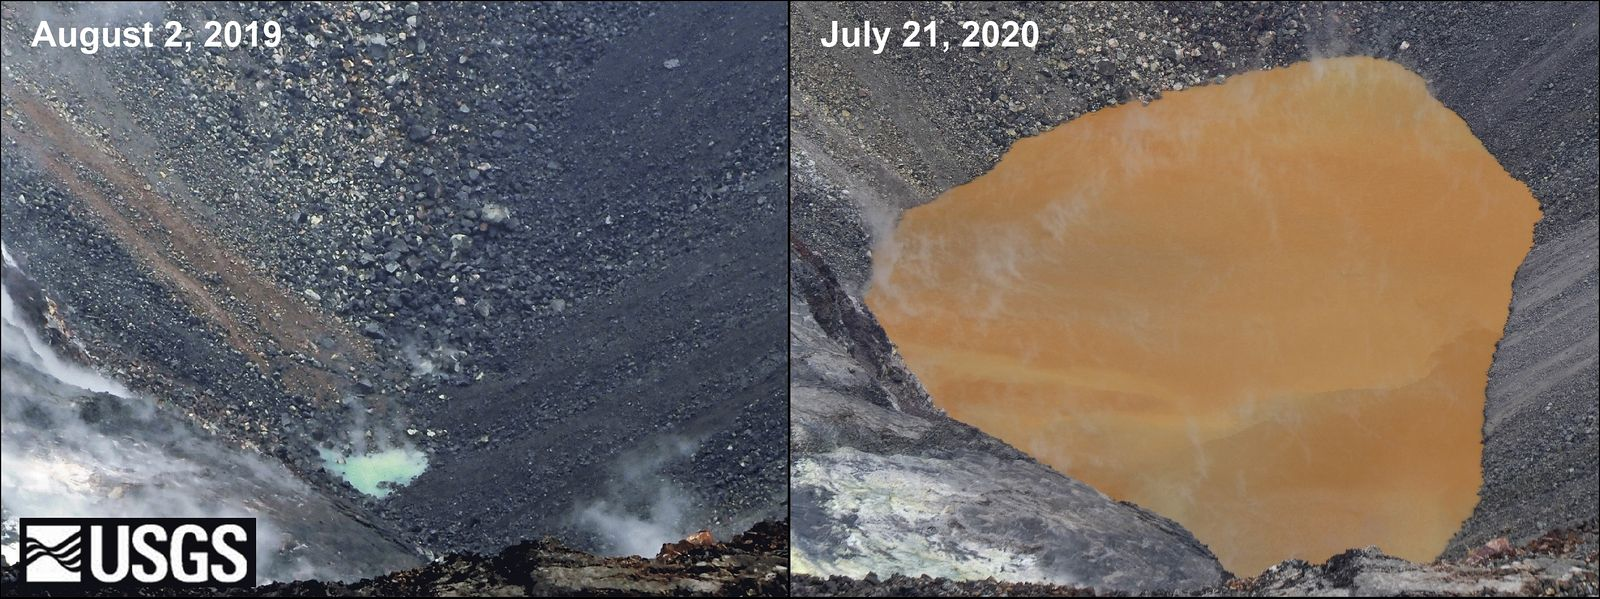 Kilauea - Halama'uma'u- crater lake level and surface variations on August 2, 2019, shows a small green pond about 2m deep, left image. The image on the right, taken on July 21, 2020, shows a lake over 40m deep with bronze to brown undertones and a sharp color border often intersecting the lake. - photo USGS / HVO - one click to enlarge